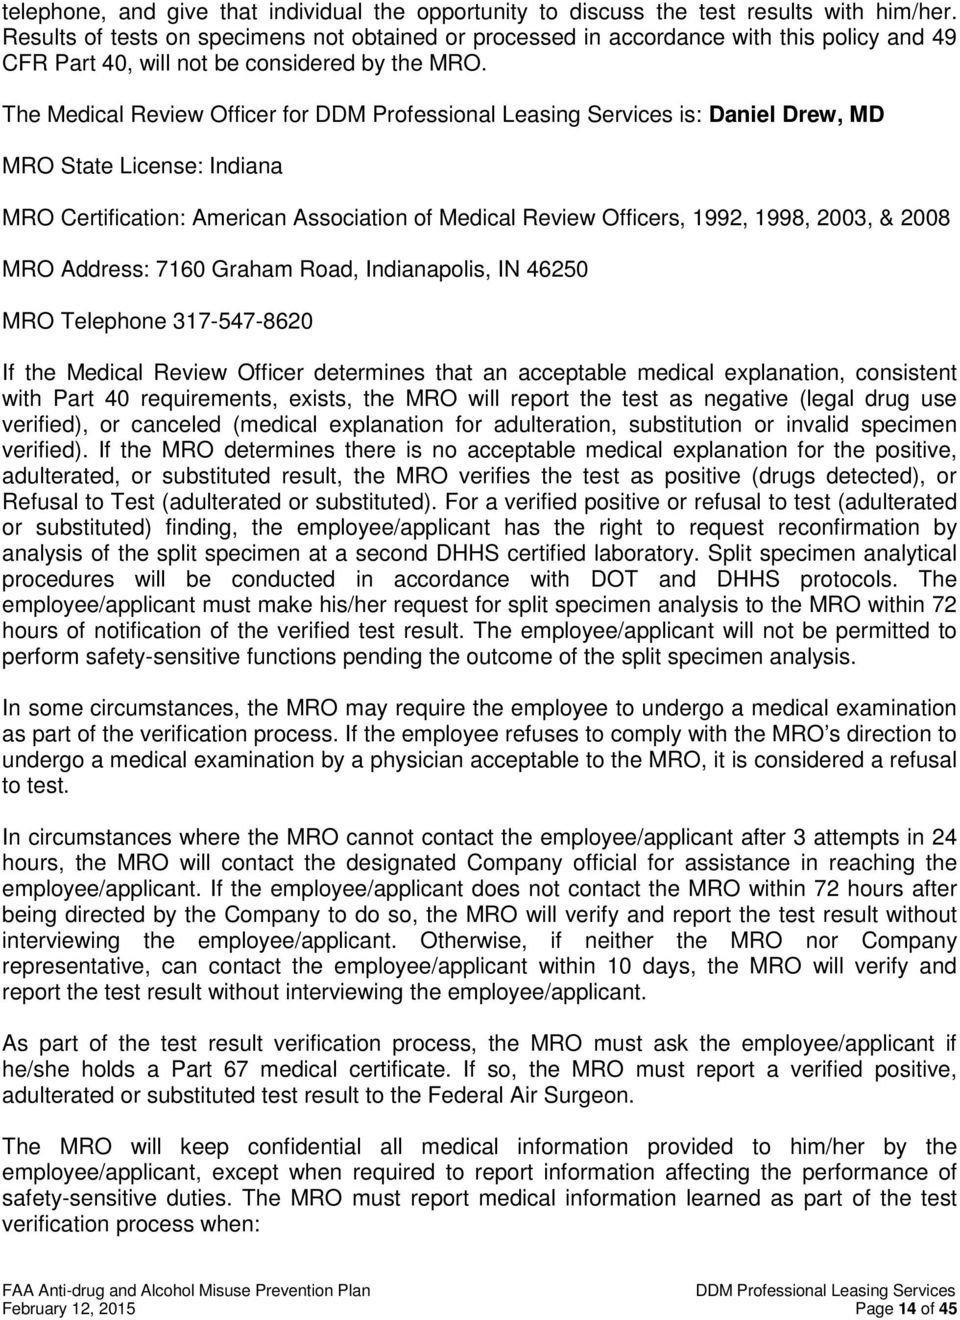 The Medical Review Officer for is: Daniel Drew, MD MRO State License: Indiana MRO Certification: American Association of Medical Review Officers, 1992, 1998, 2003, & 2008 MRO Address: 7160 Graham